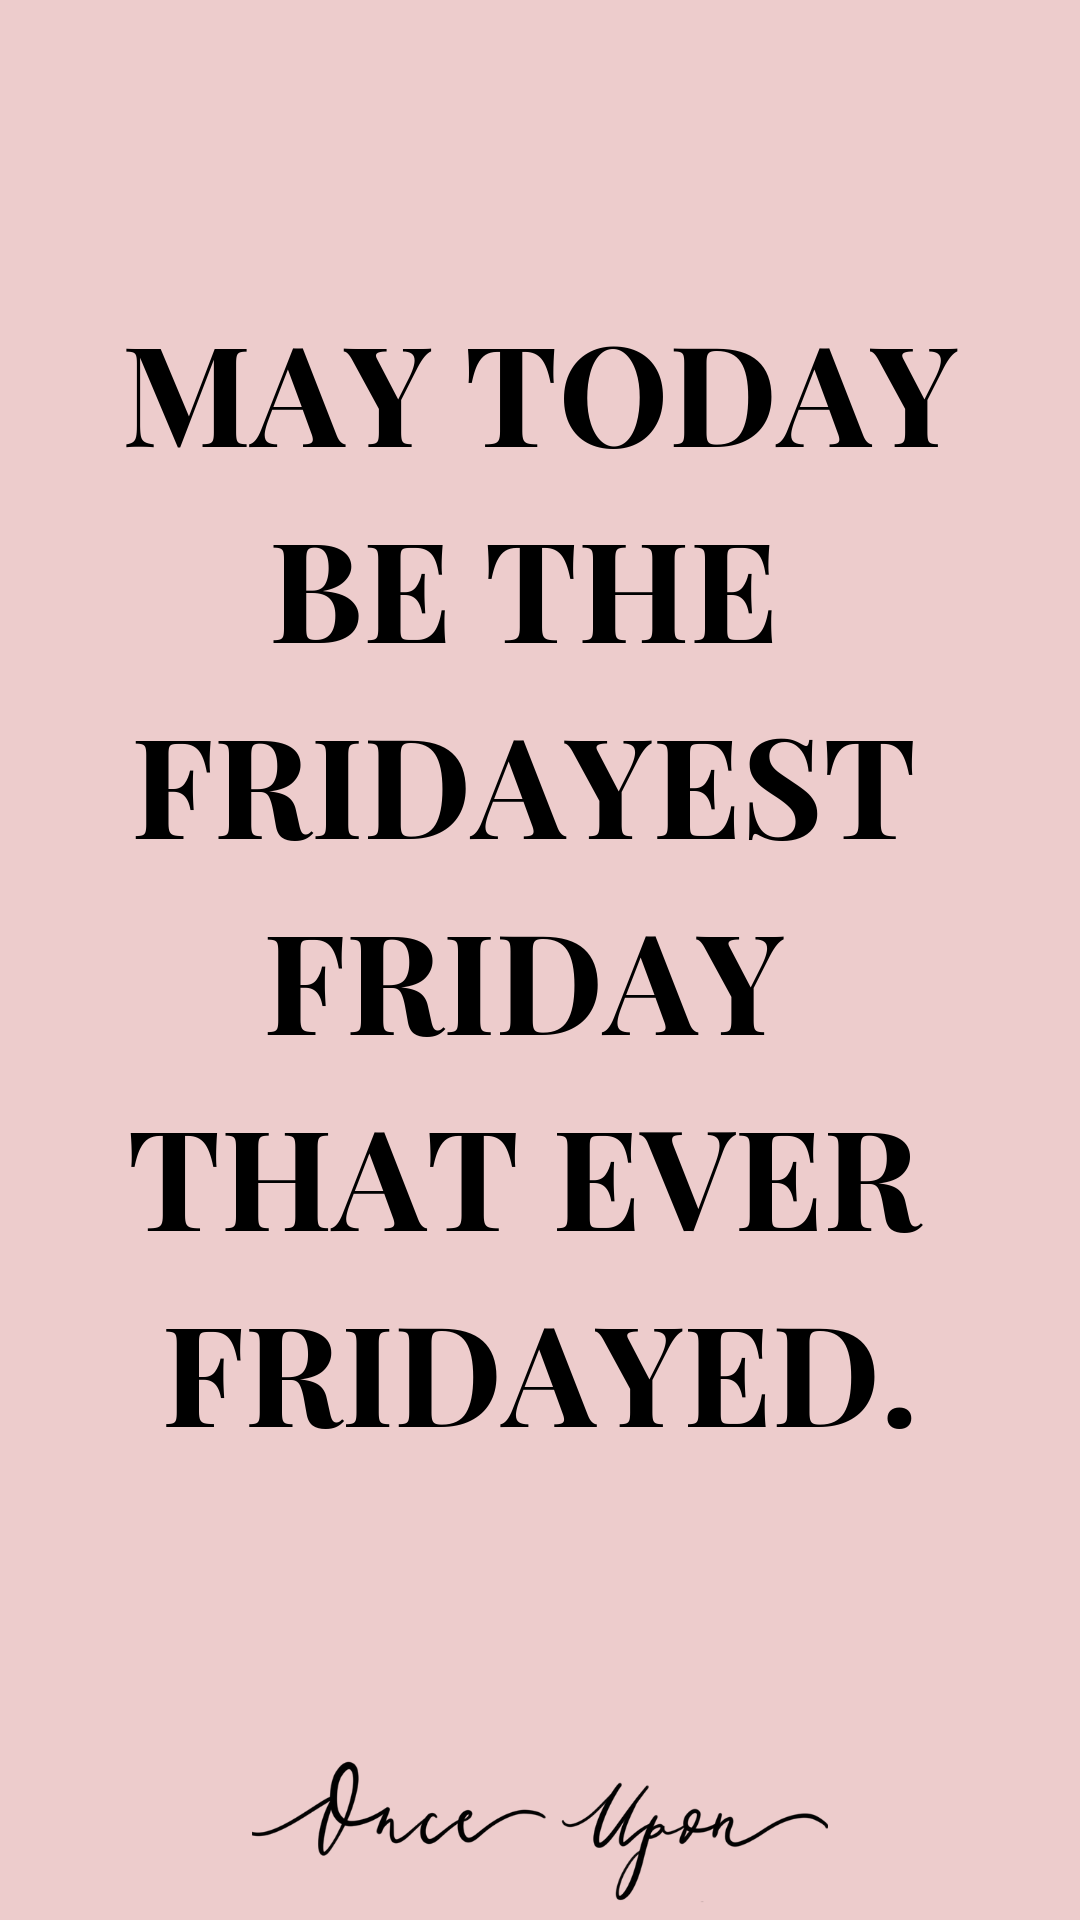 Friday Mood Weekend Quotes New York Quotes City Quotes